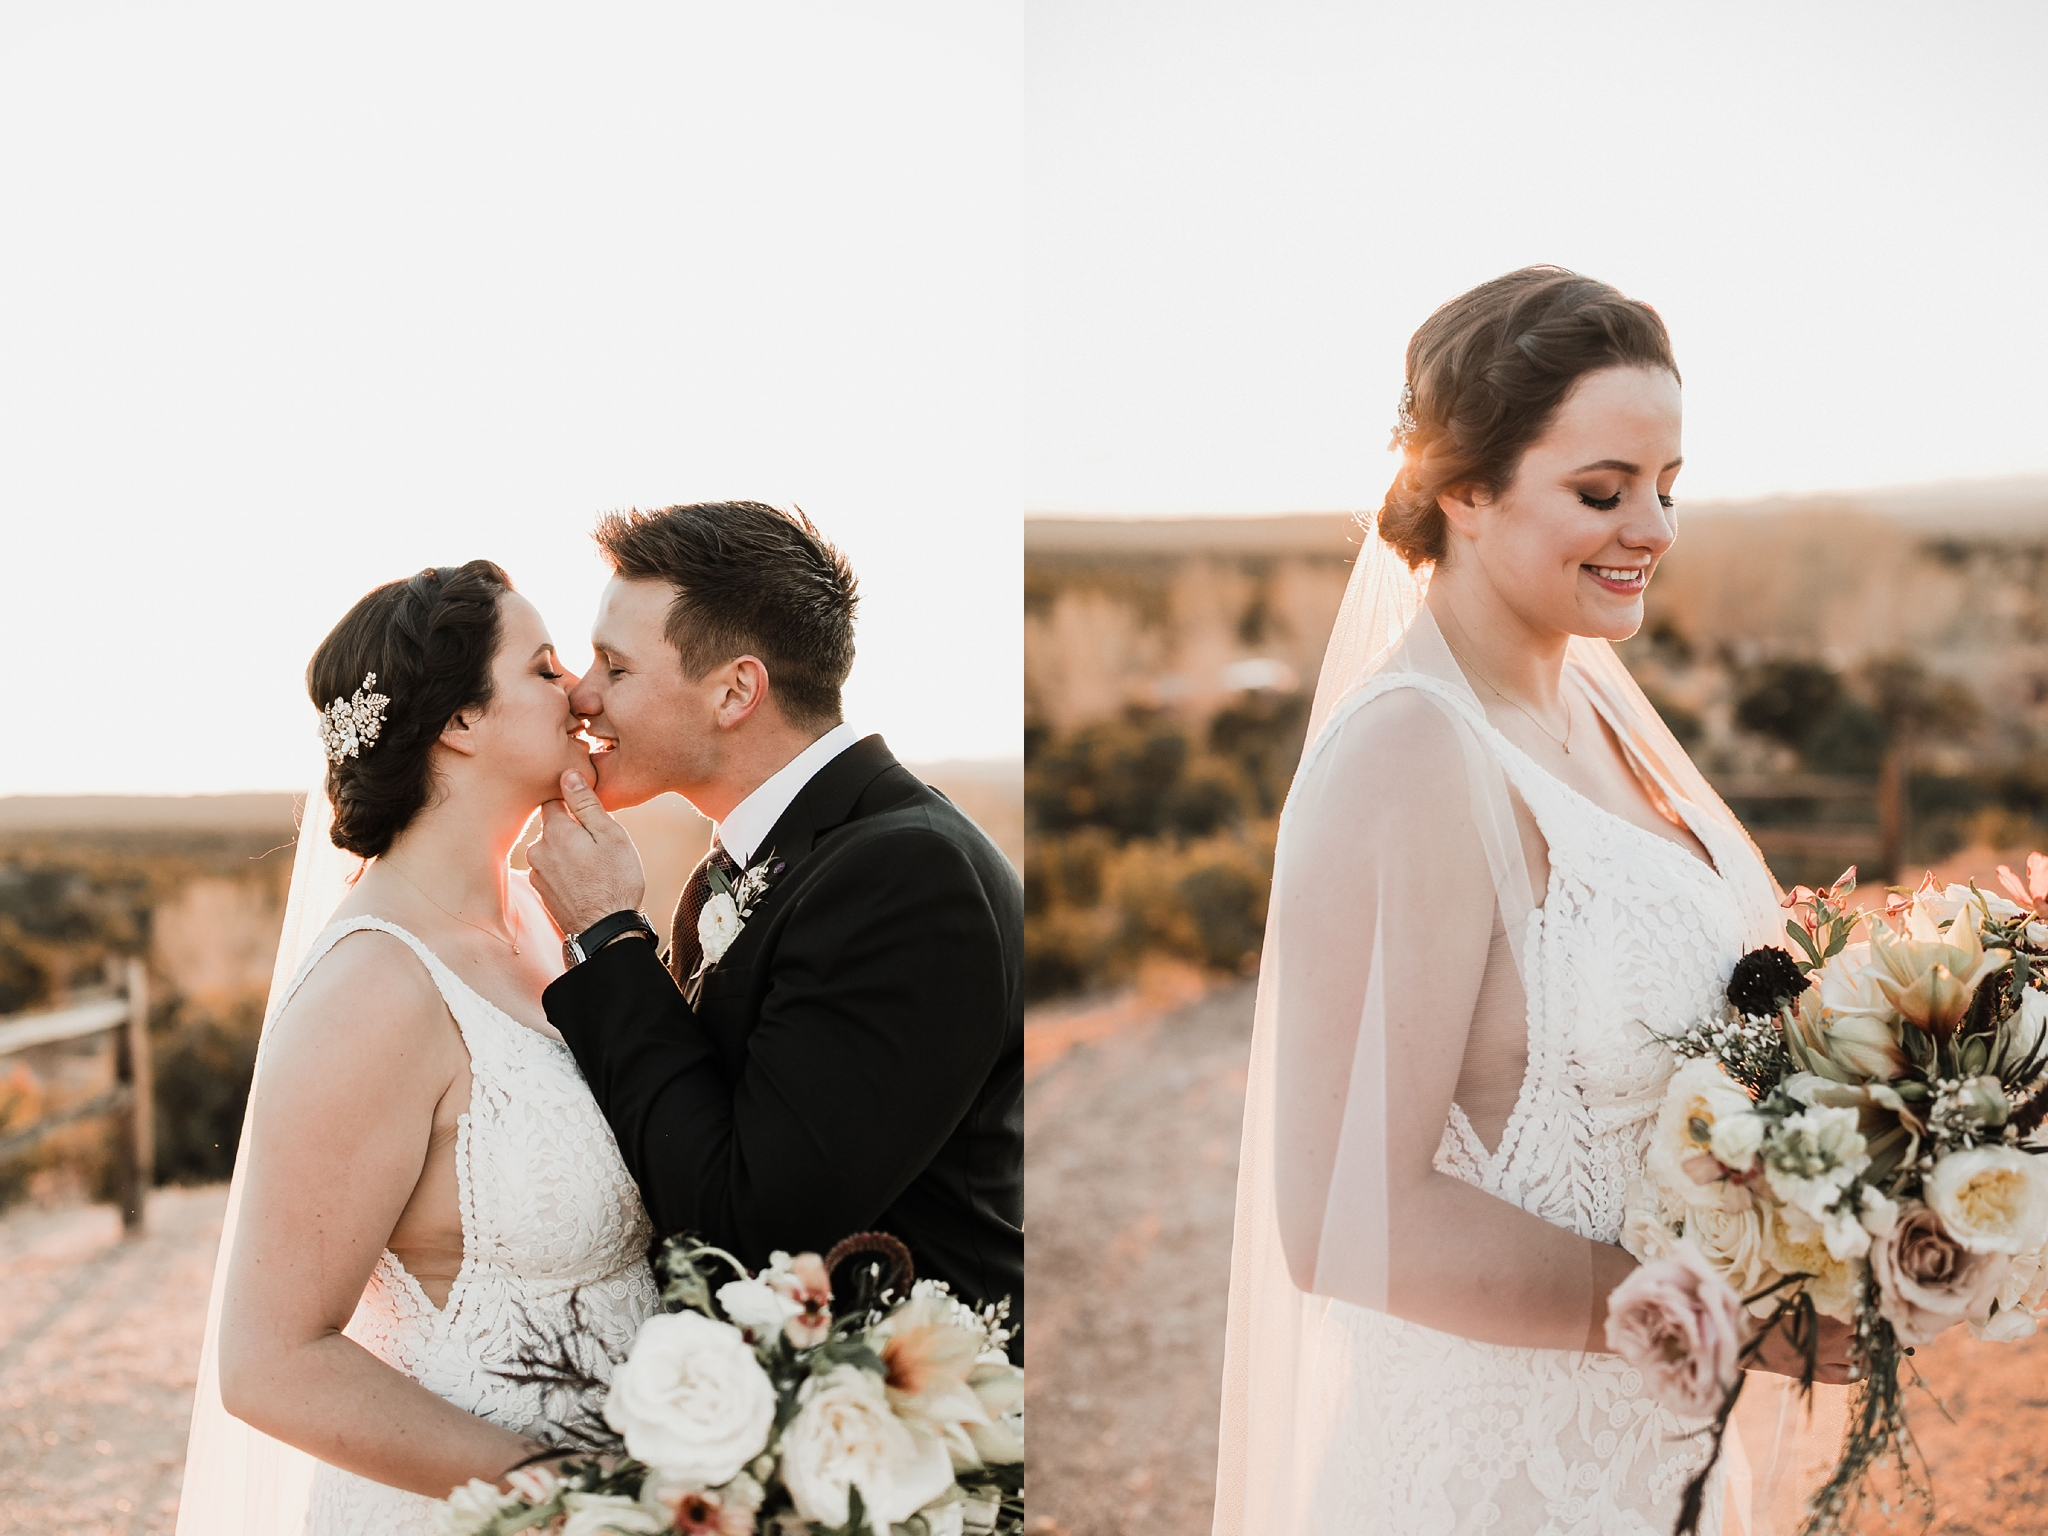 Alicia+lucia+photography+-+albuquerque+wedding+photographer+-+santa+fe+wedding+photography+-+new+mexico+wedding+photographer+-+new+mexico+wedding+-+santa+fe+wedding+-+albuquerque+wedding+-+bridal+hair_0013.jpg